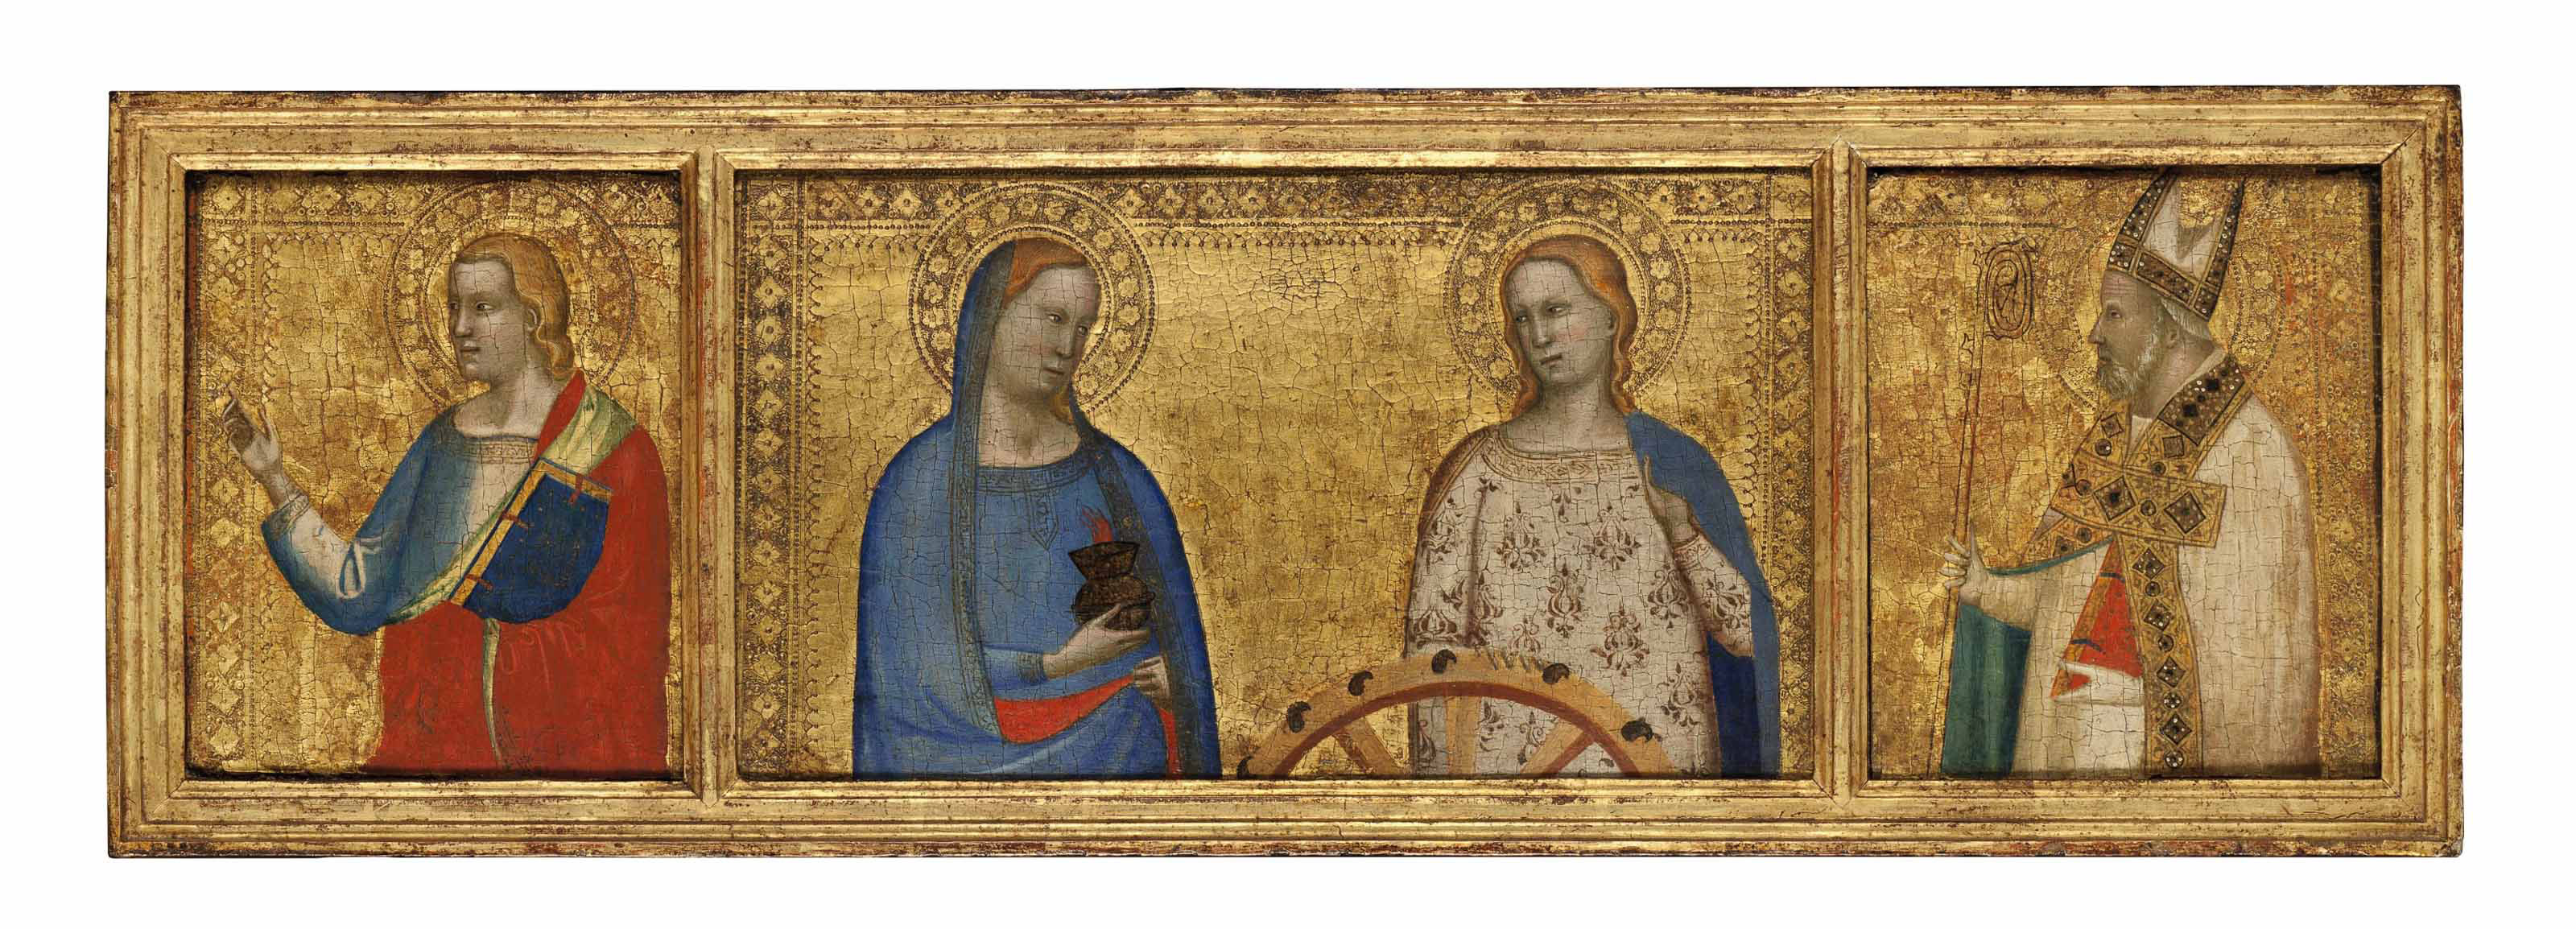 Saints Lucy and Catherine of Alexandria; Saint John the Evangelist; and Saint Nicholas of Bari (?): Predella panels from the S. Giorgio a Ruballa altarpiece